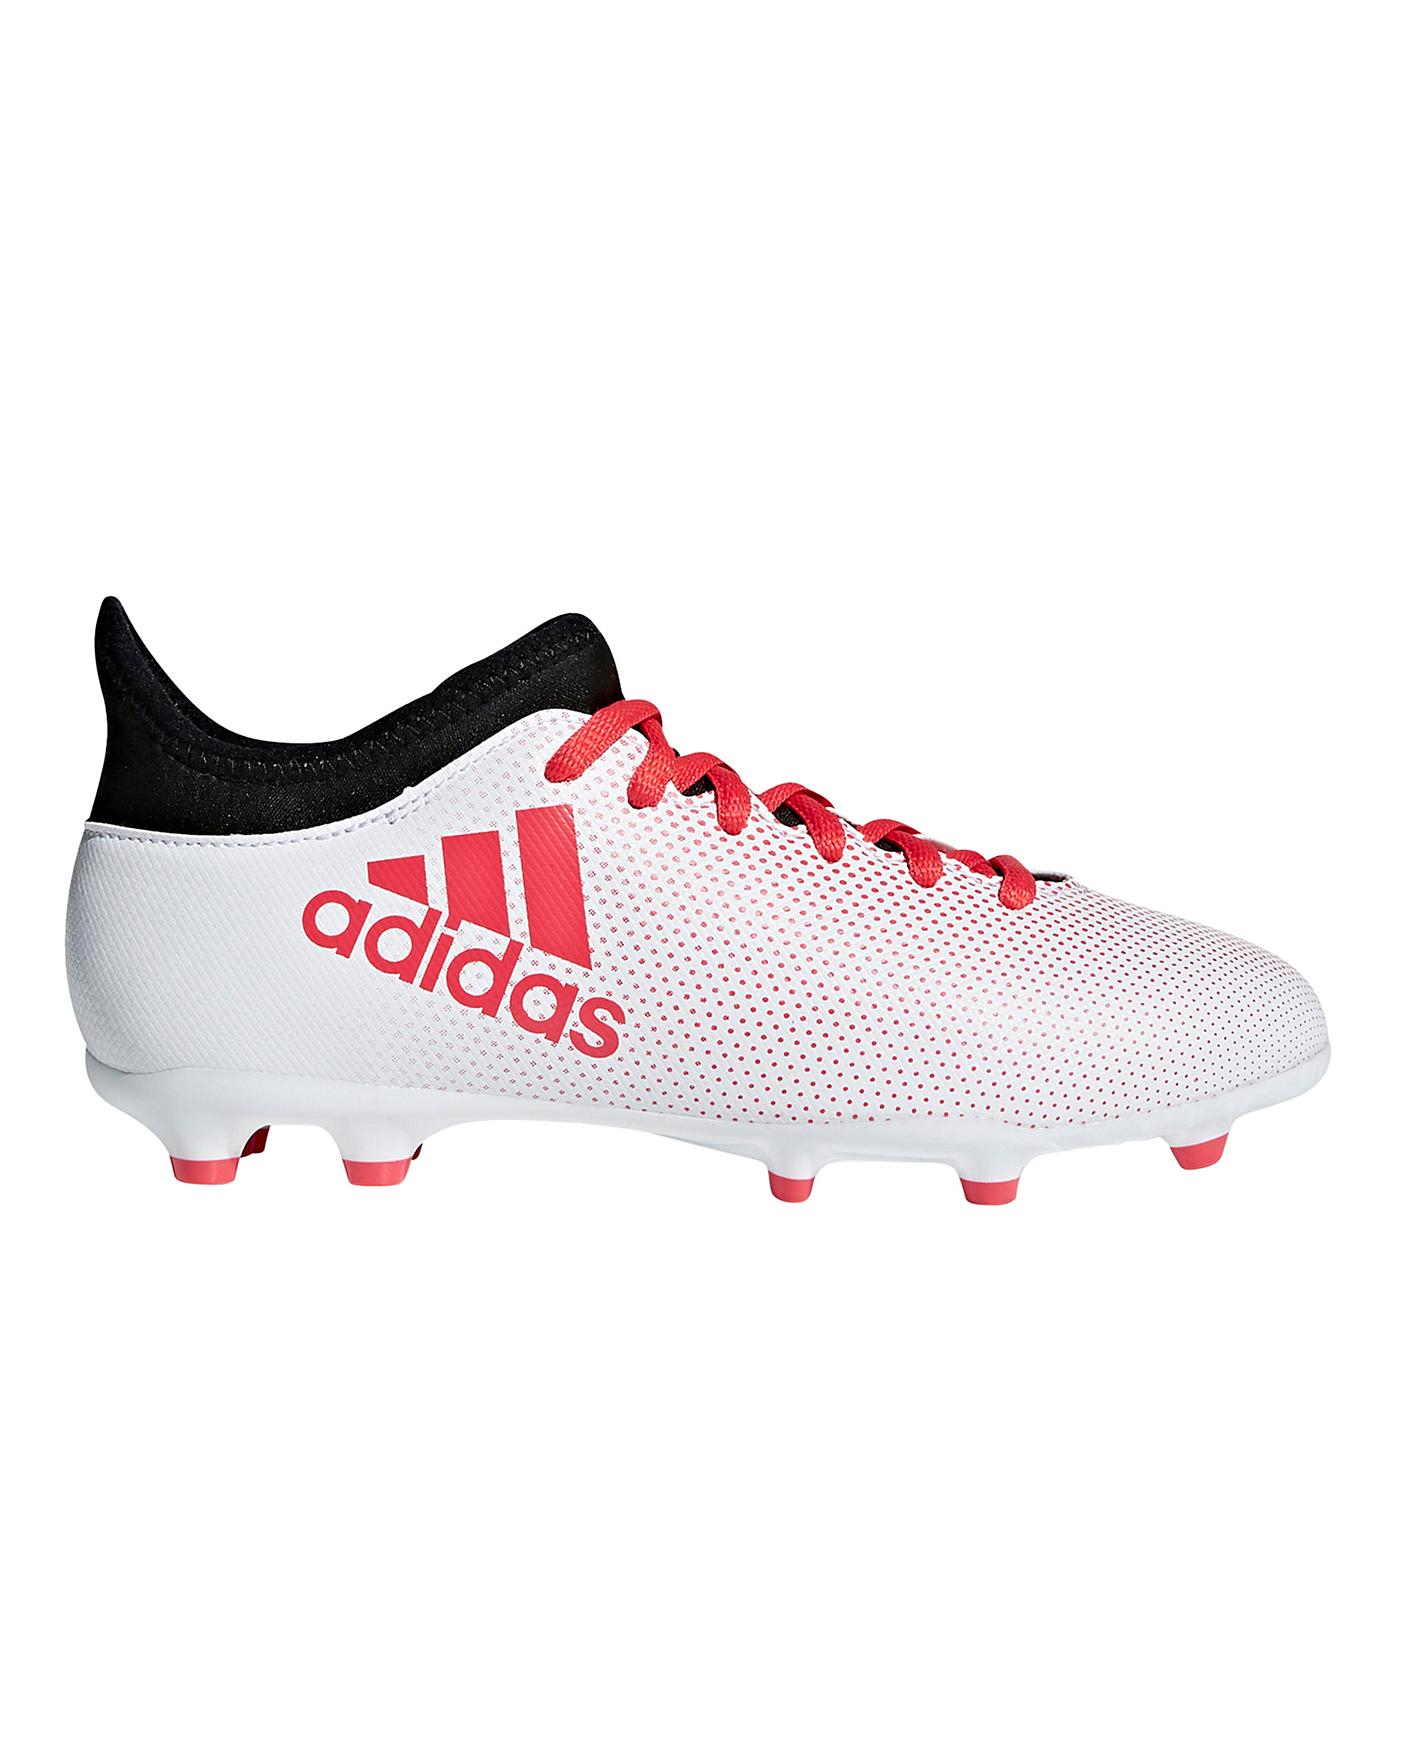 adidas X 17.3 FG Football Boots | Oxendales